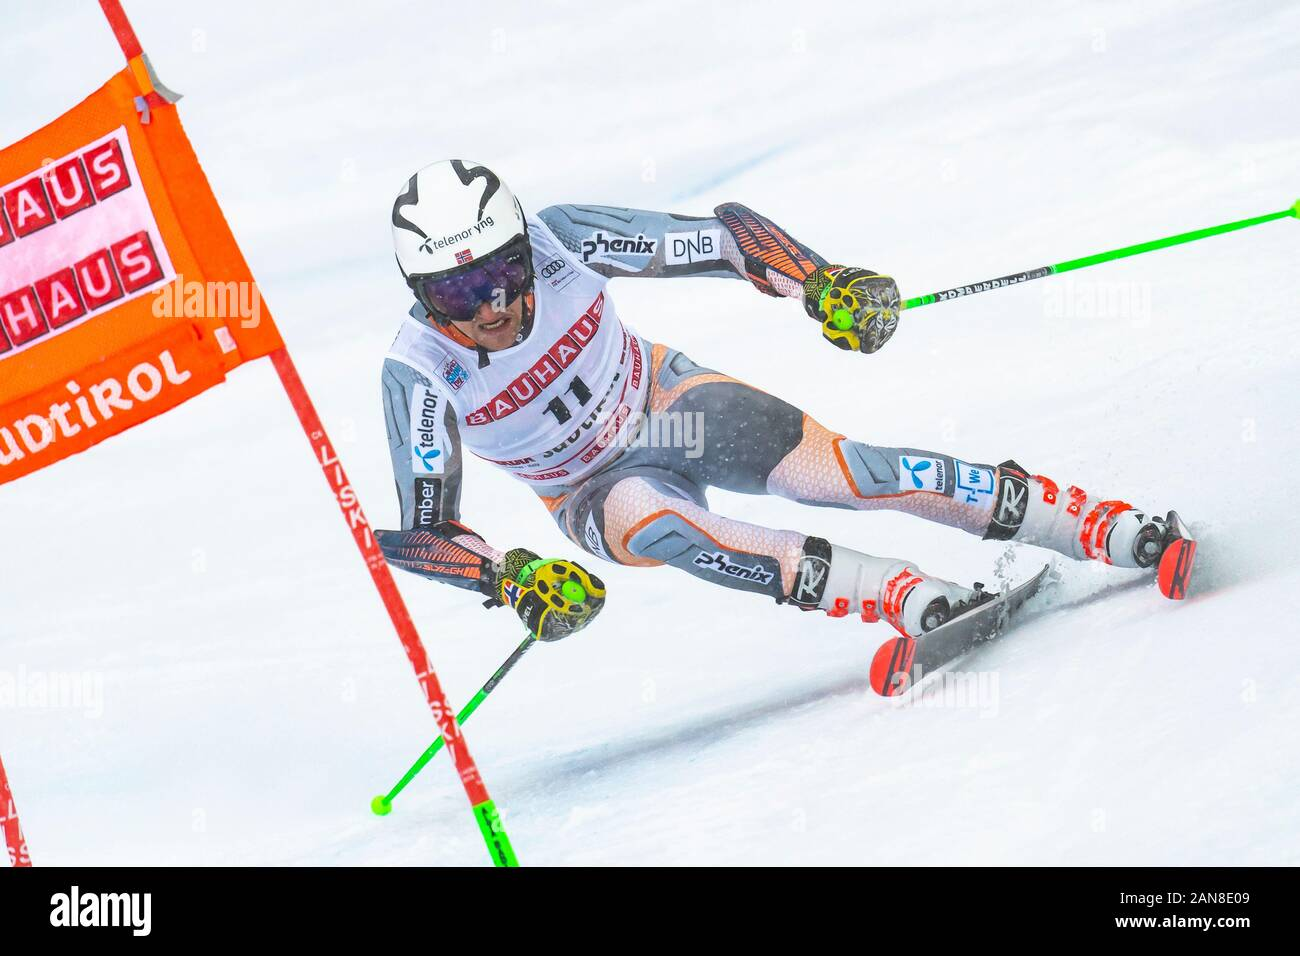 Alta Badia, Italy 22 December 2019.  WINDINGSTAD Rasmus (Nor) competing in the Audi Fis Alpine Skiing World Cup Men's Giant Slalom on the Gran Risa Co Stock Photo